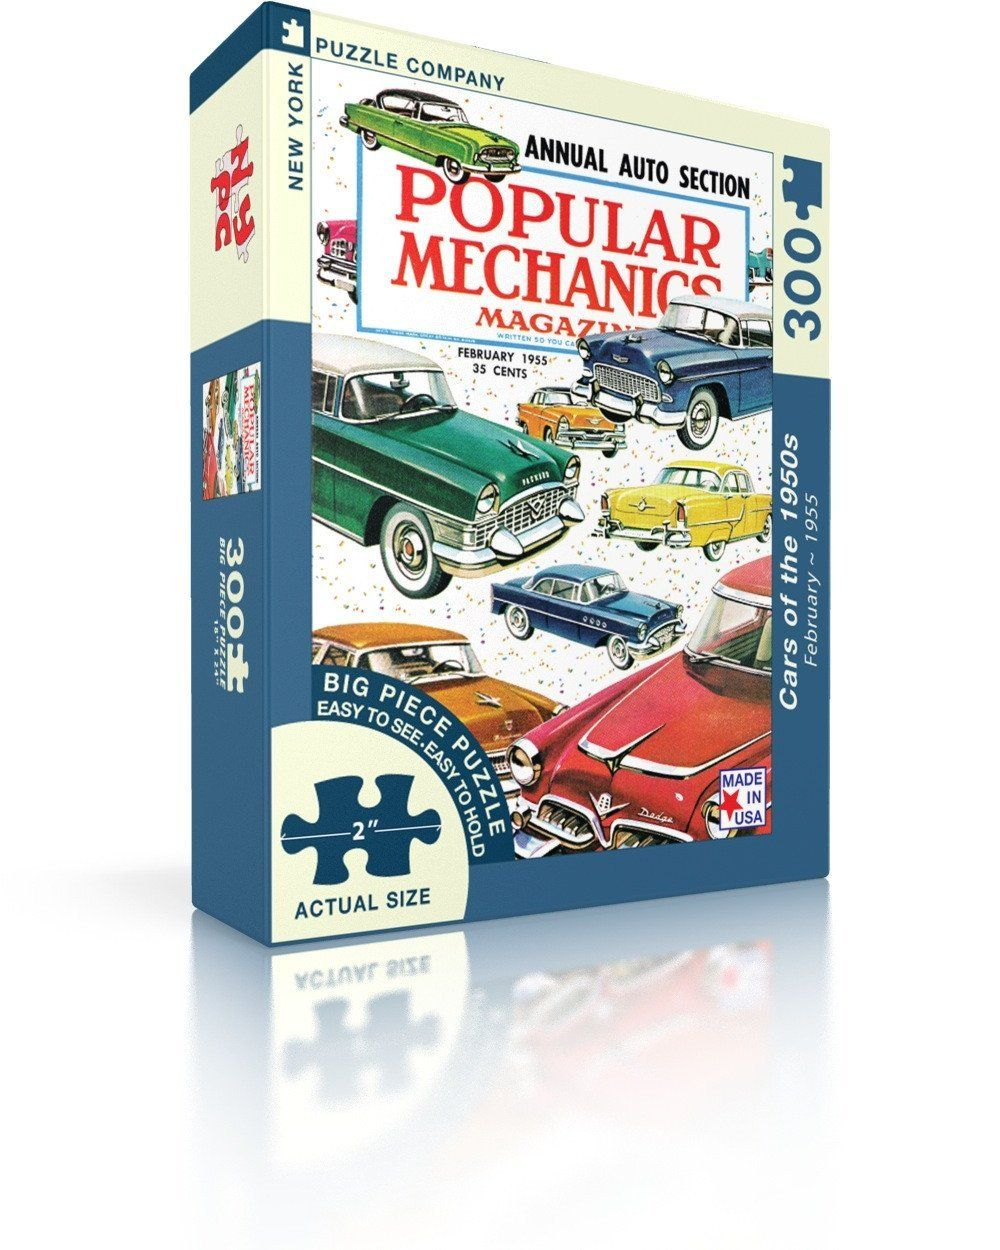 Cars of the 1950s Puzzle by New York Puzzle Co. 300